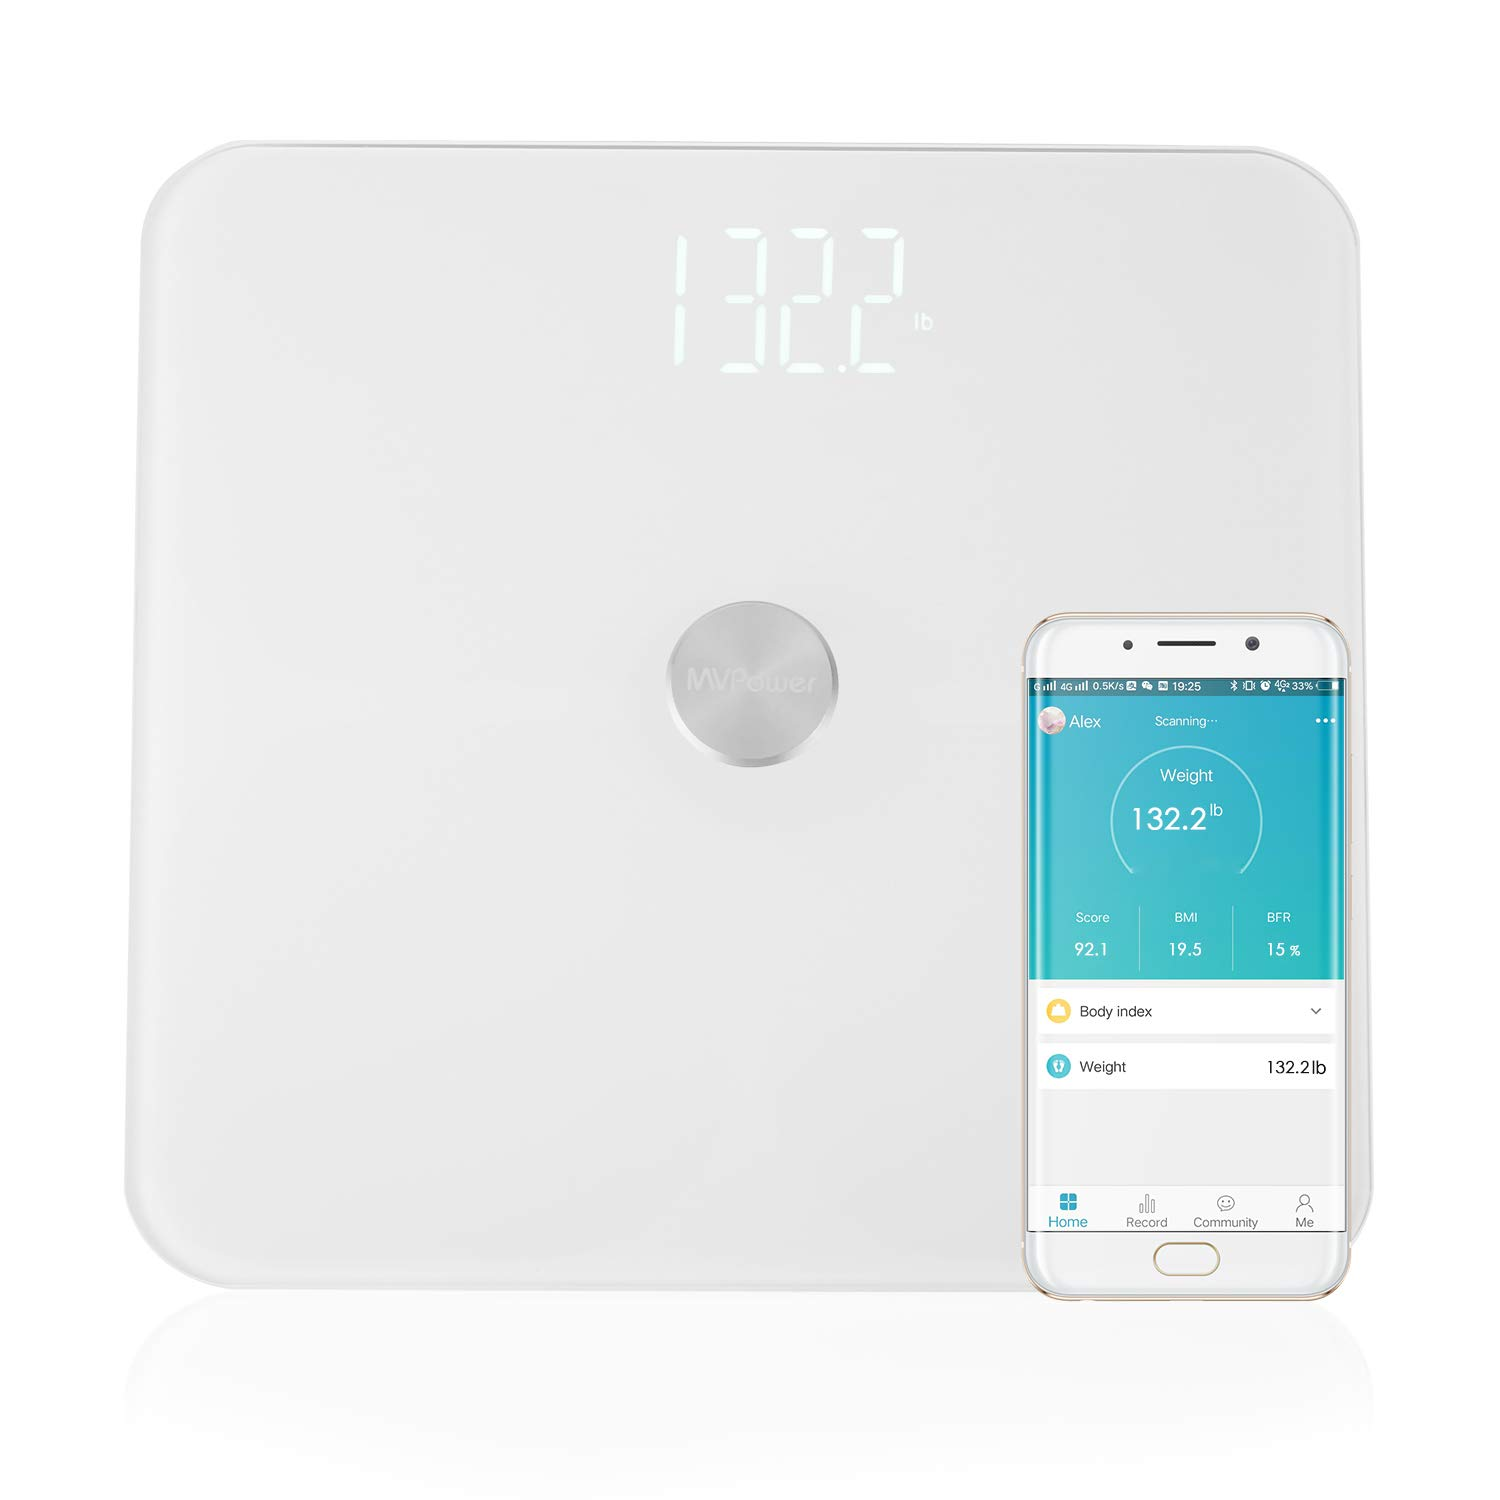 MVPower Bluetooth Body Fat Scale-Smart BMI Digital Bathroom Wireless Weight Scale with ITO Conductive Glass,Body Composition Analyzer with Smartphone App, 400 lb(Batteries Included) by MVPower